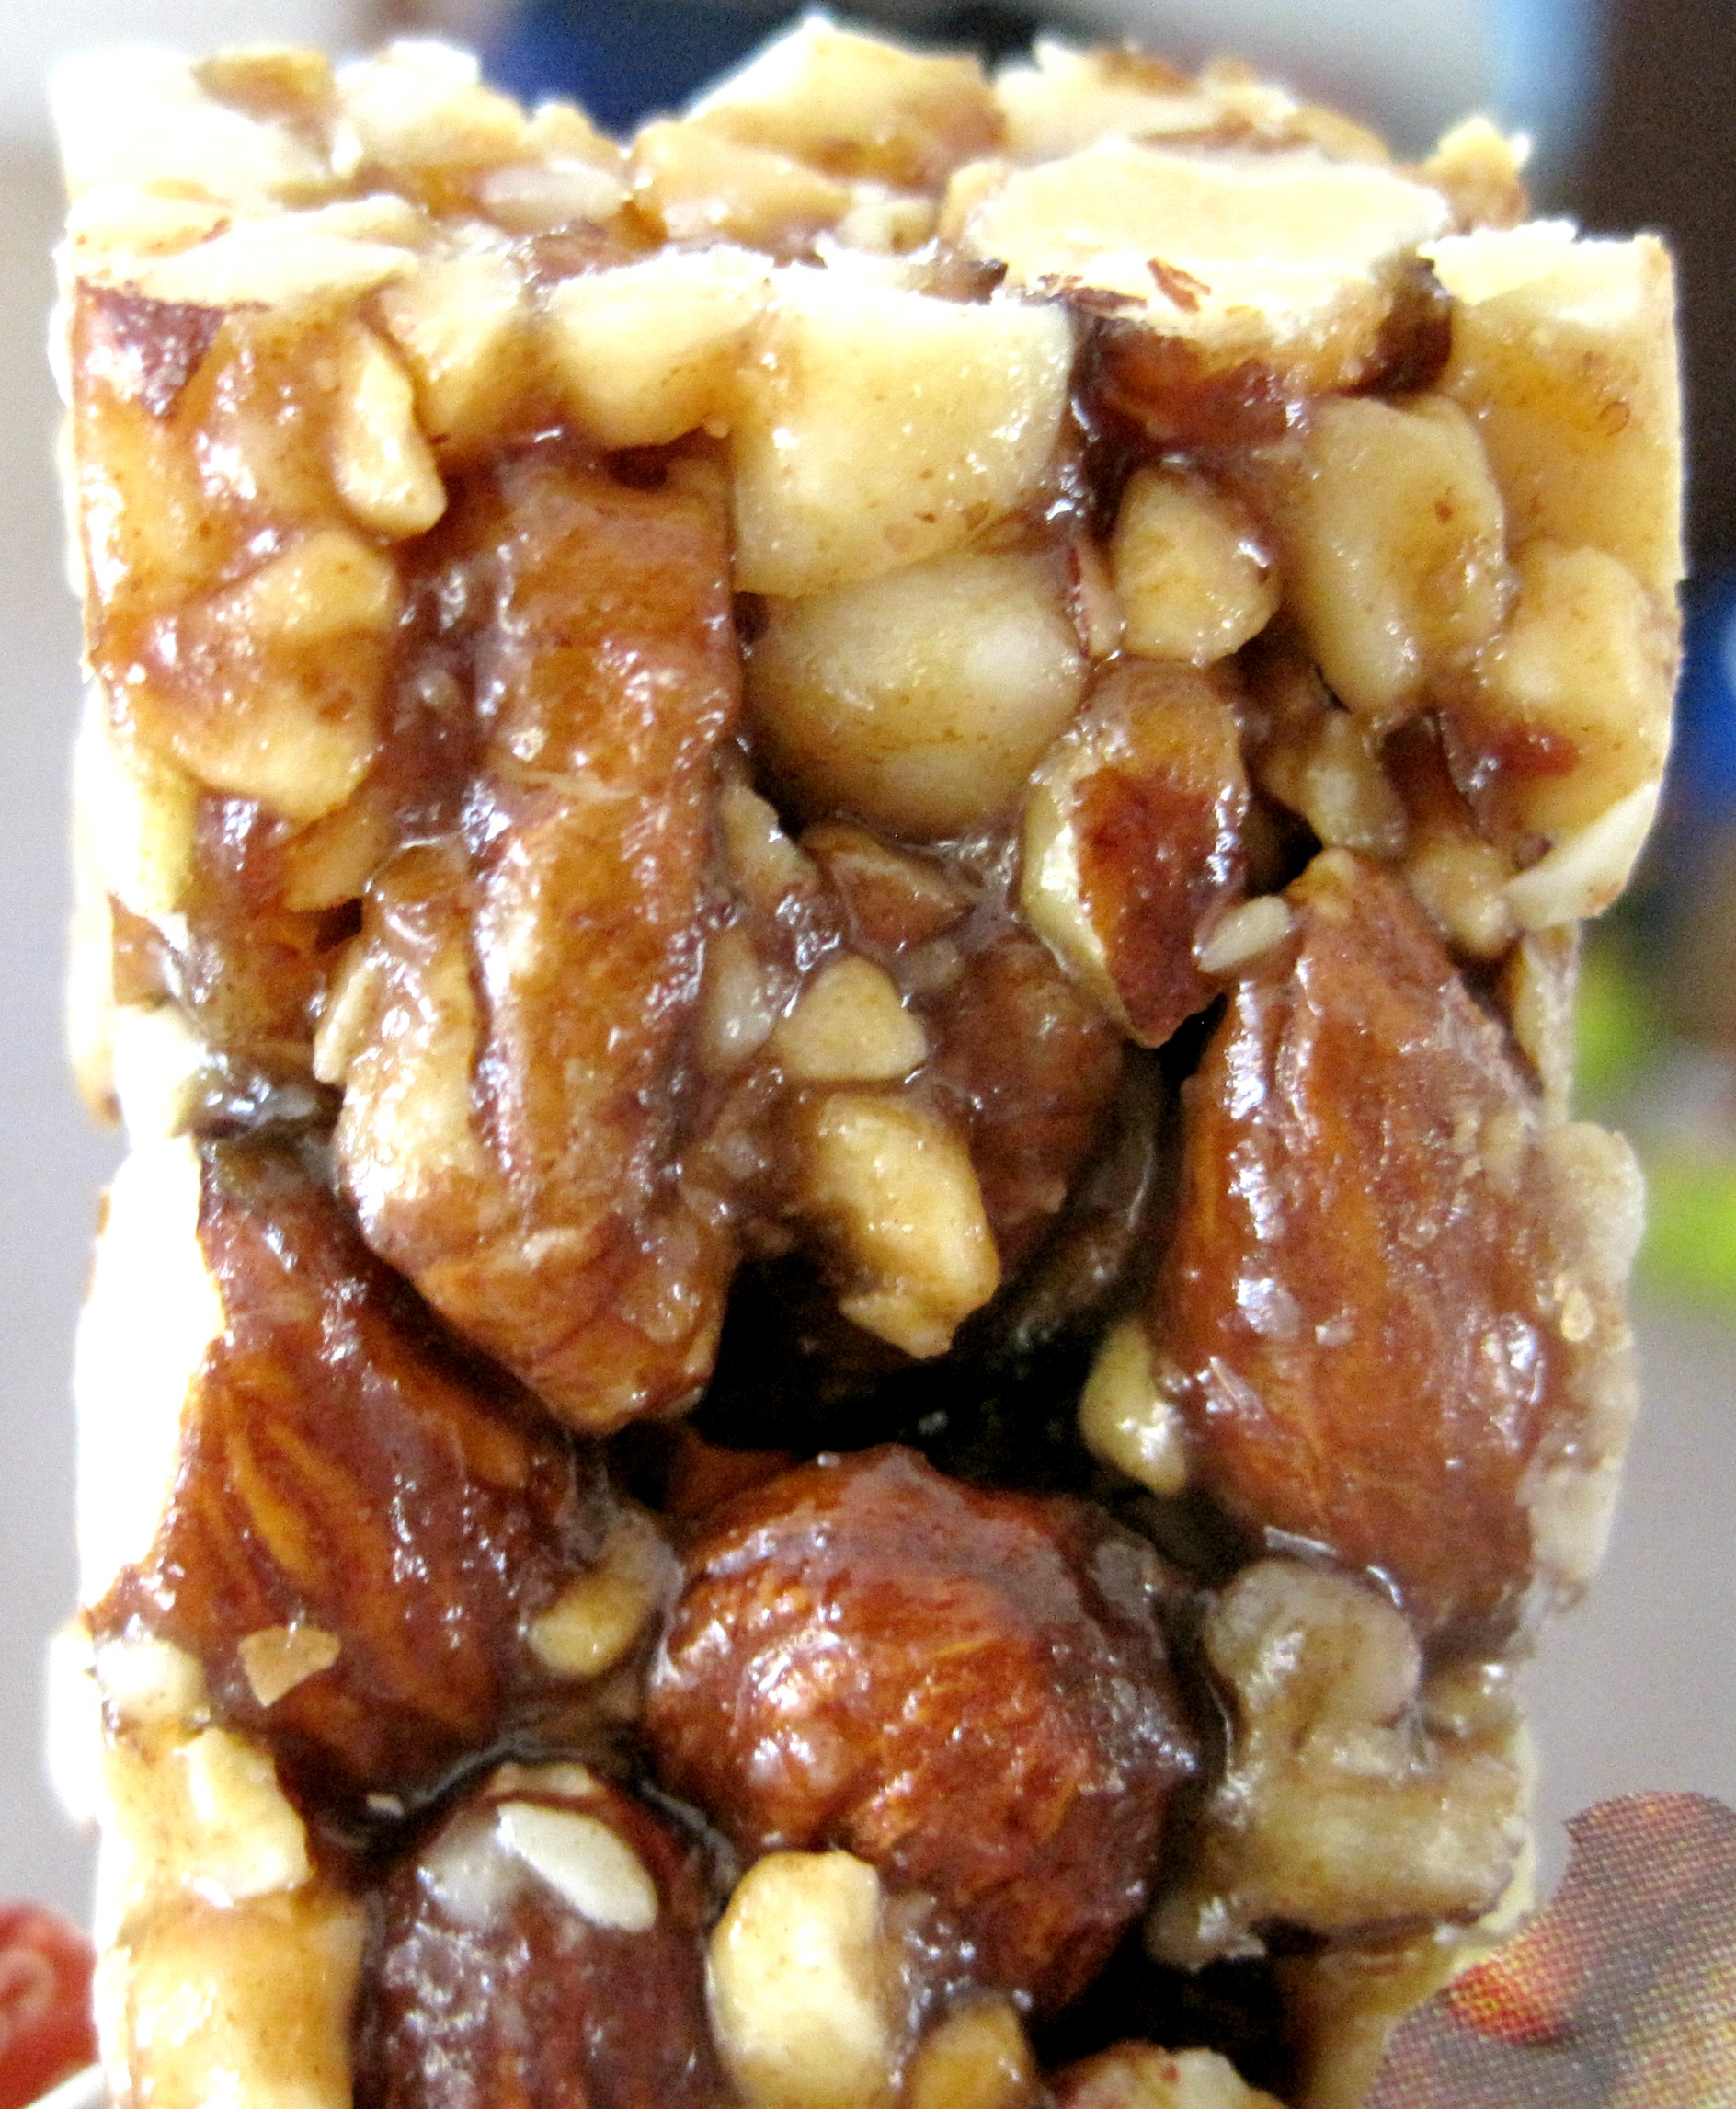 larabar uber bar toasted nut roll